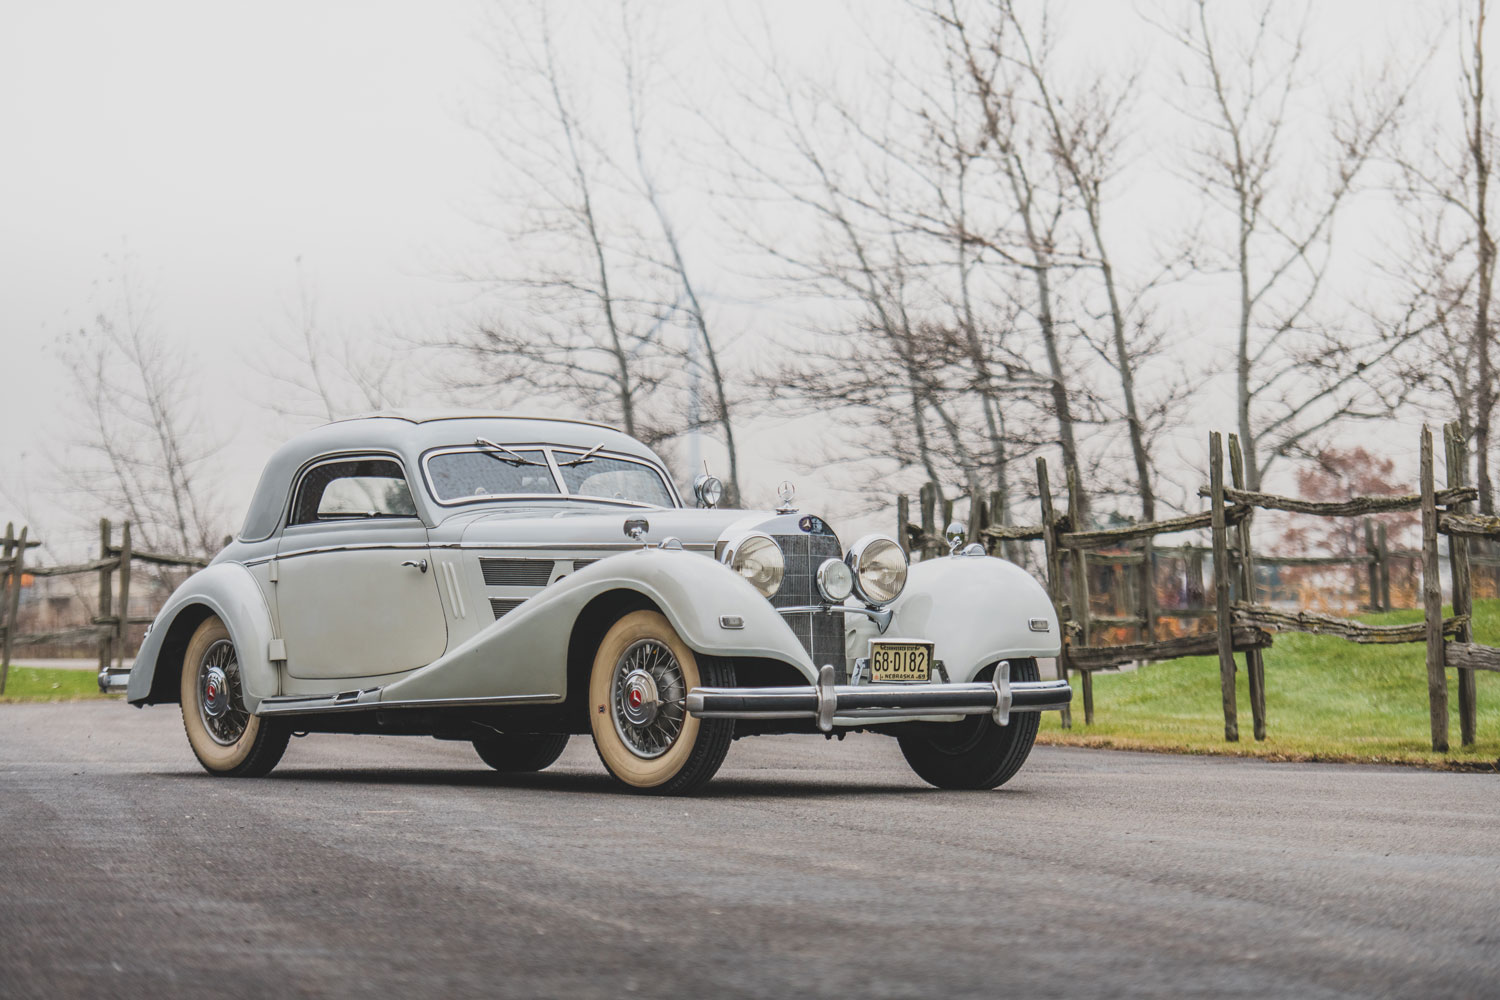 1937 Mercedes-Benz 540 K Coupe